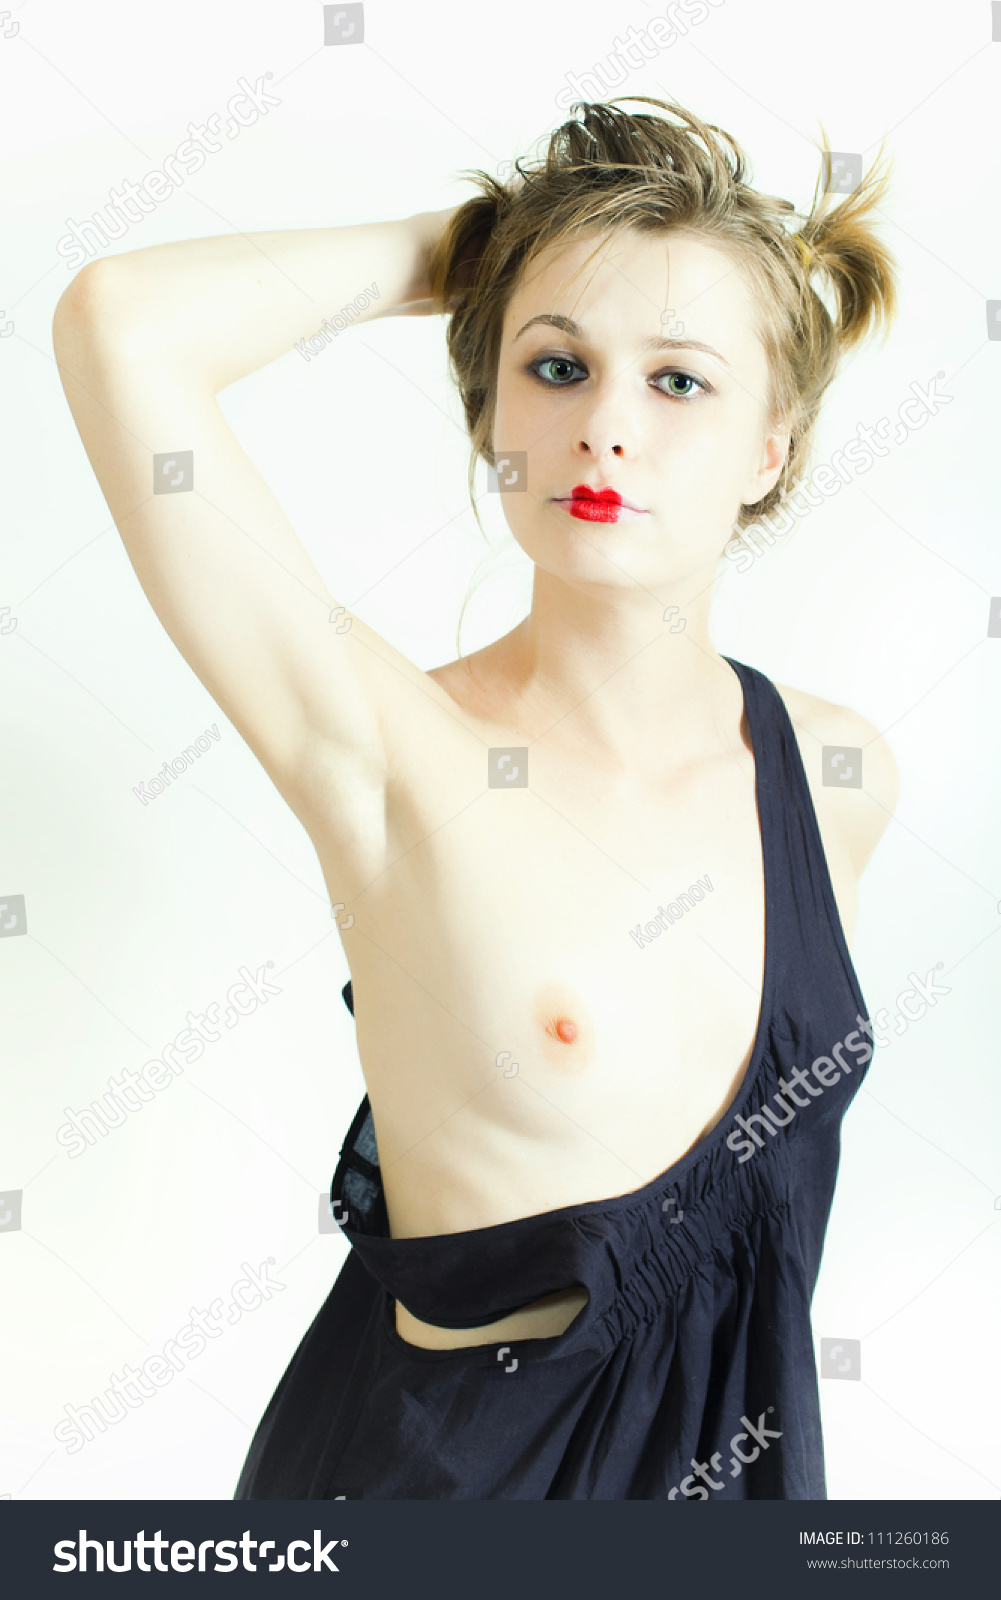 Portrait Young Woman Barechested On White Stock Photo 111260186 ...